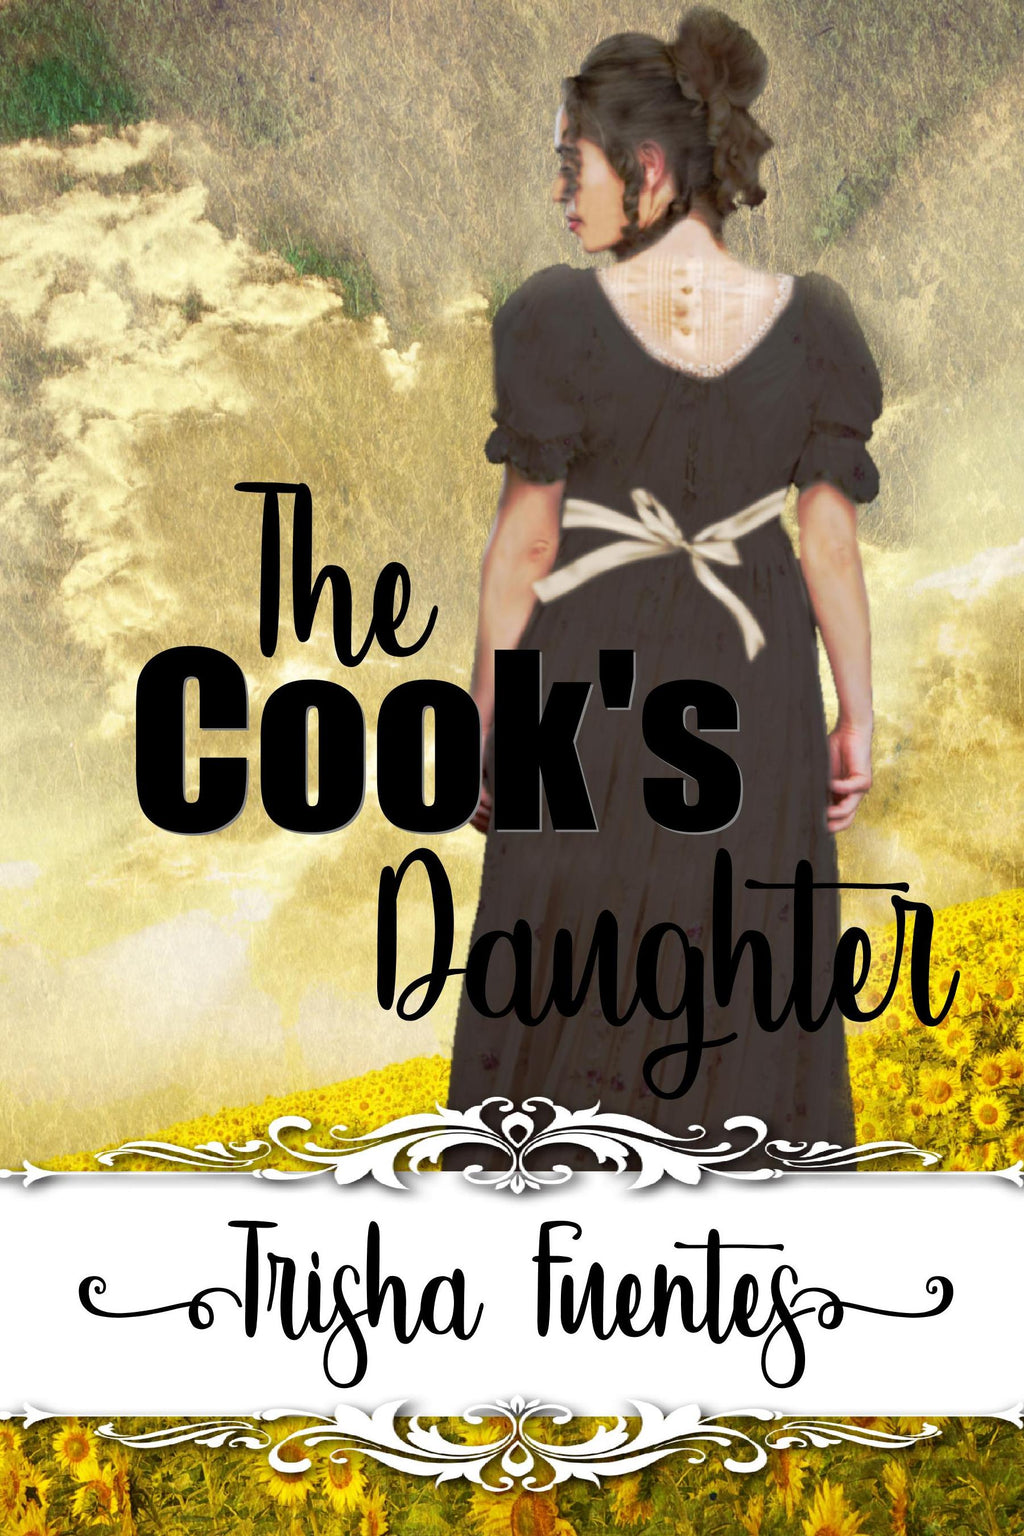 The Cook's Daughter